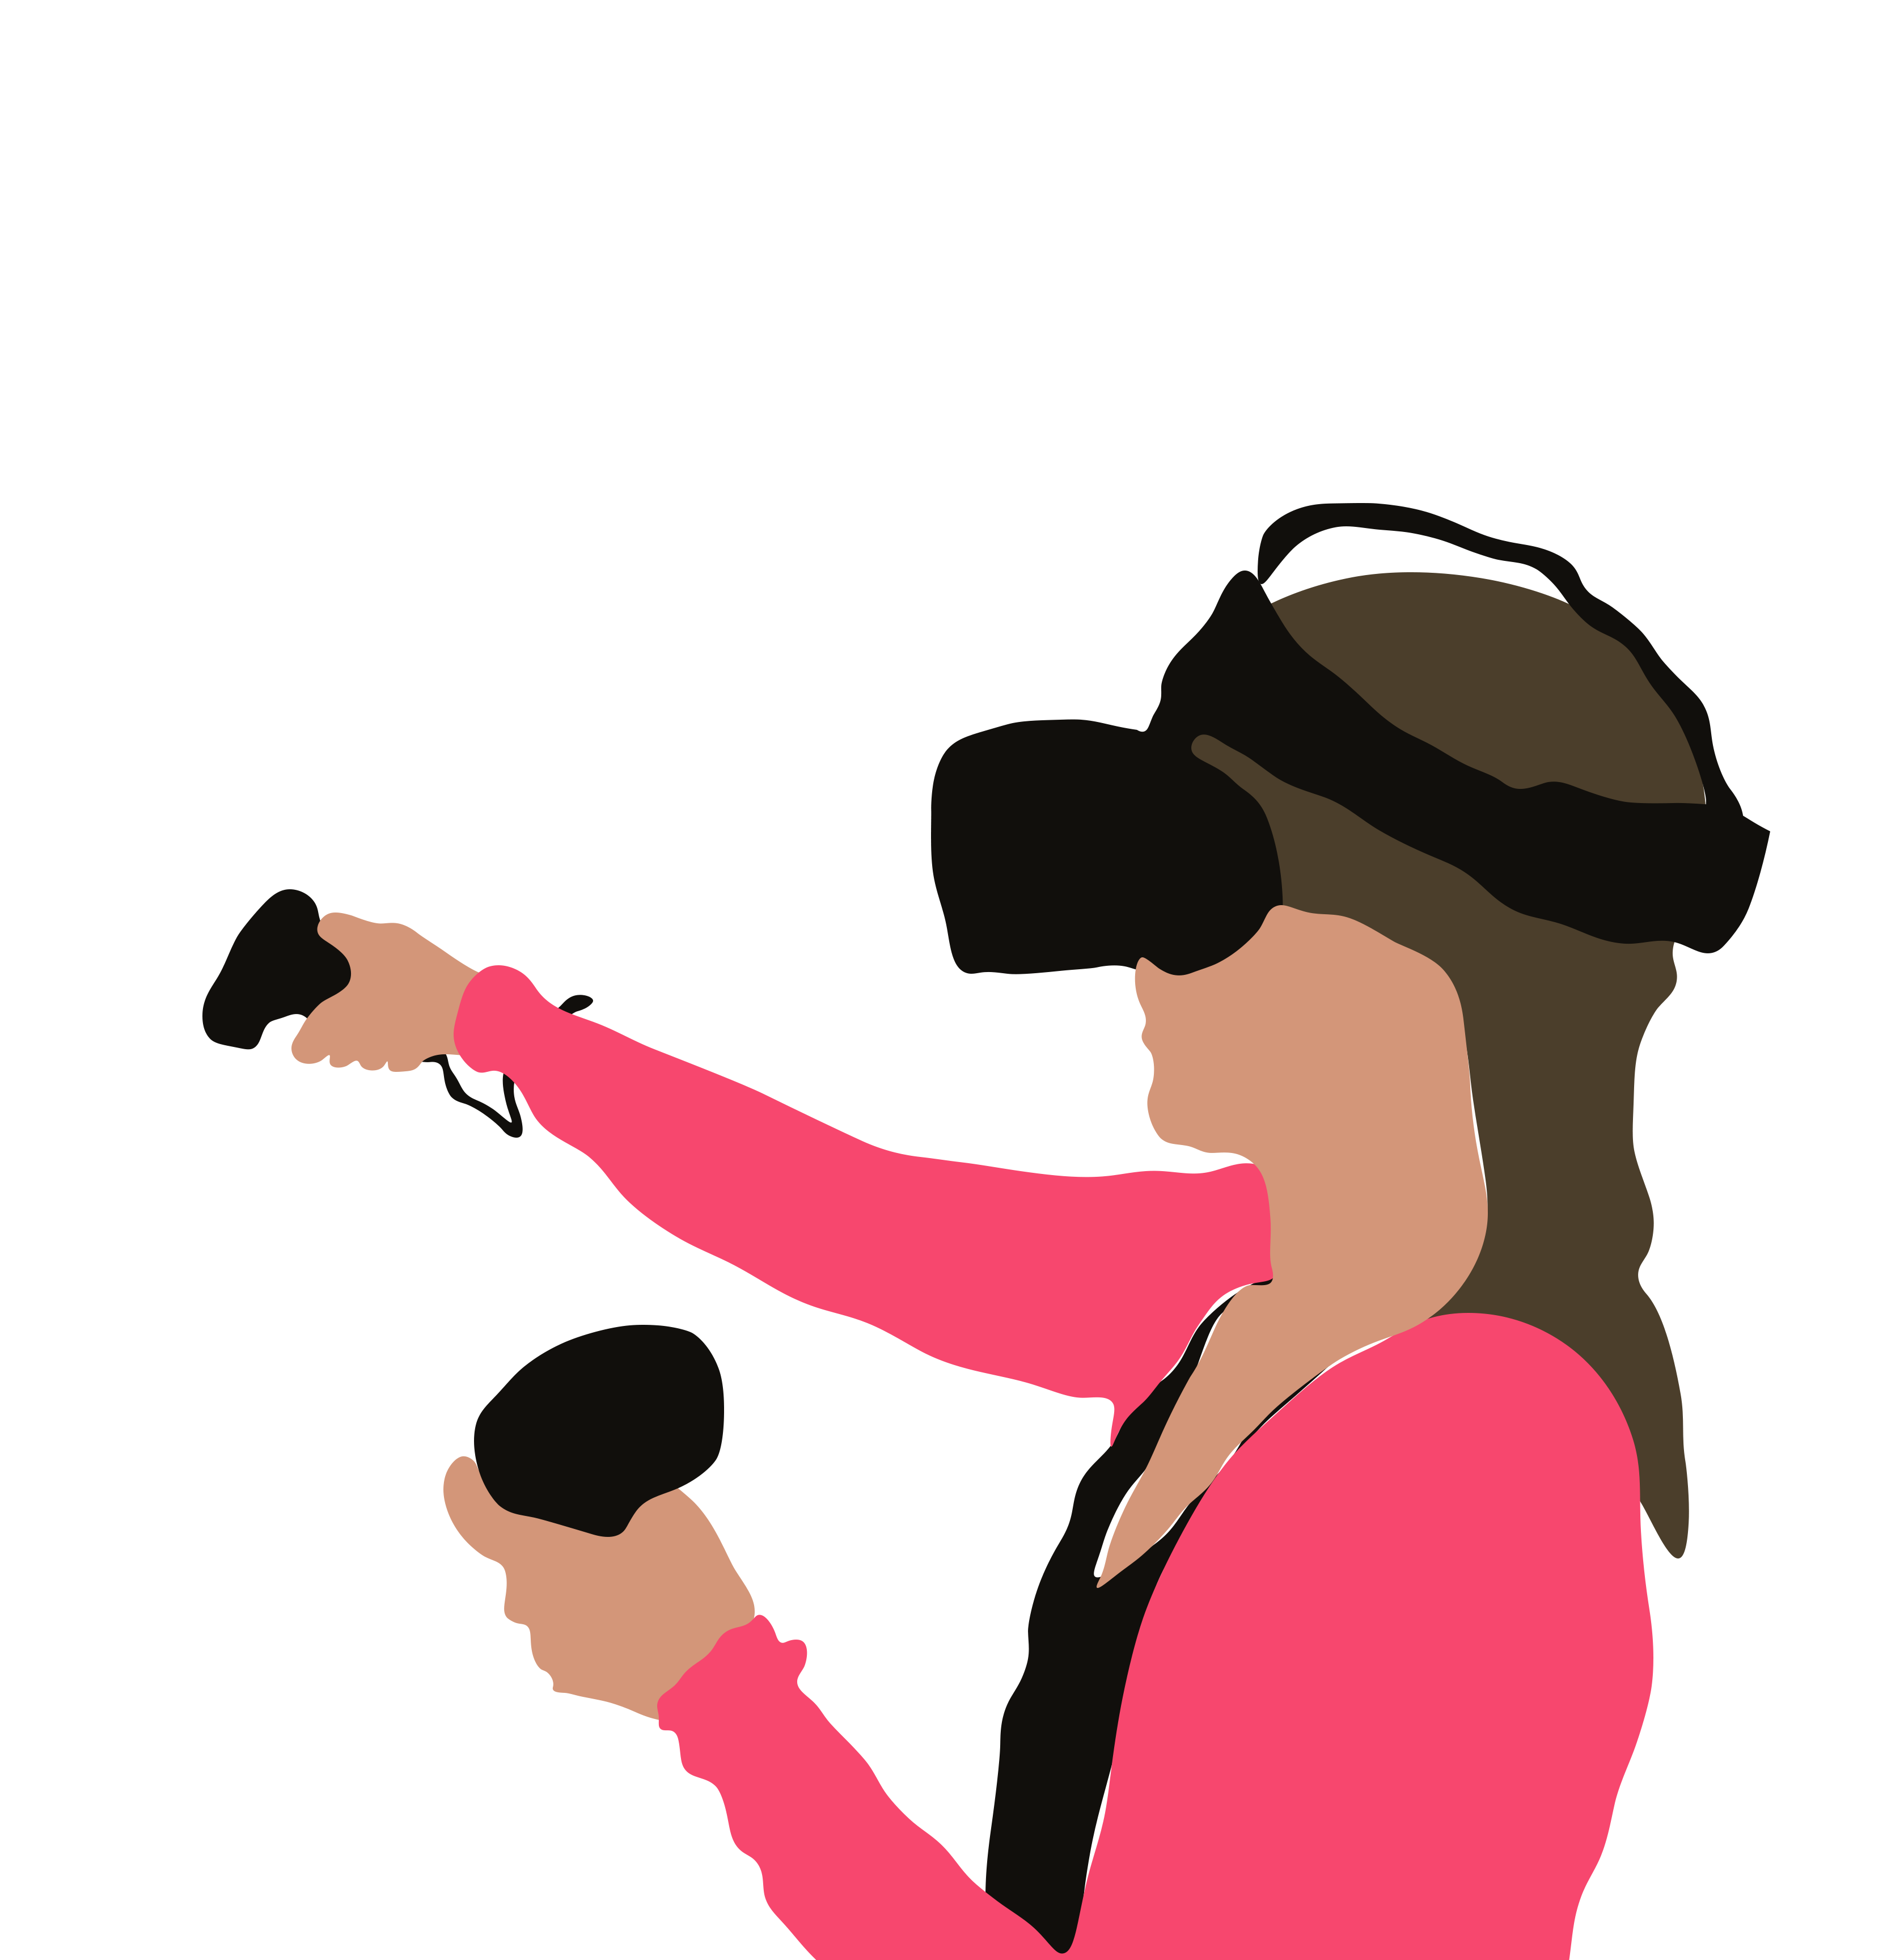 Illustration of a woman in a VR headset